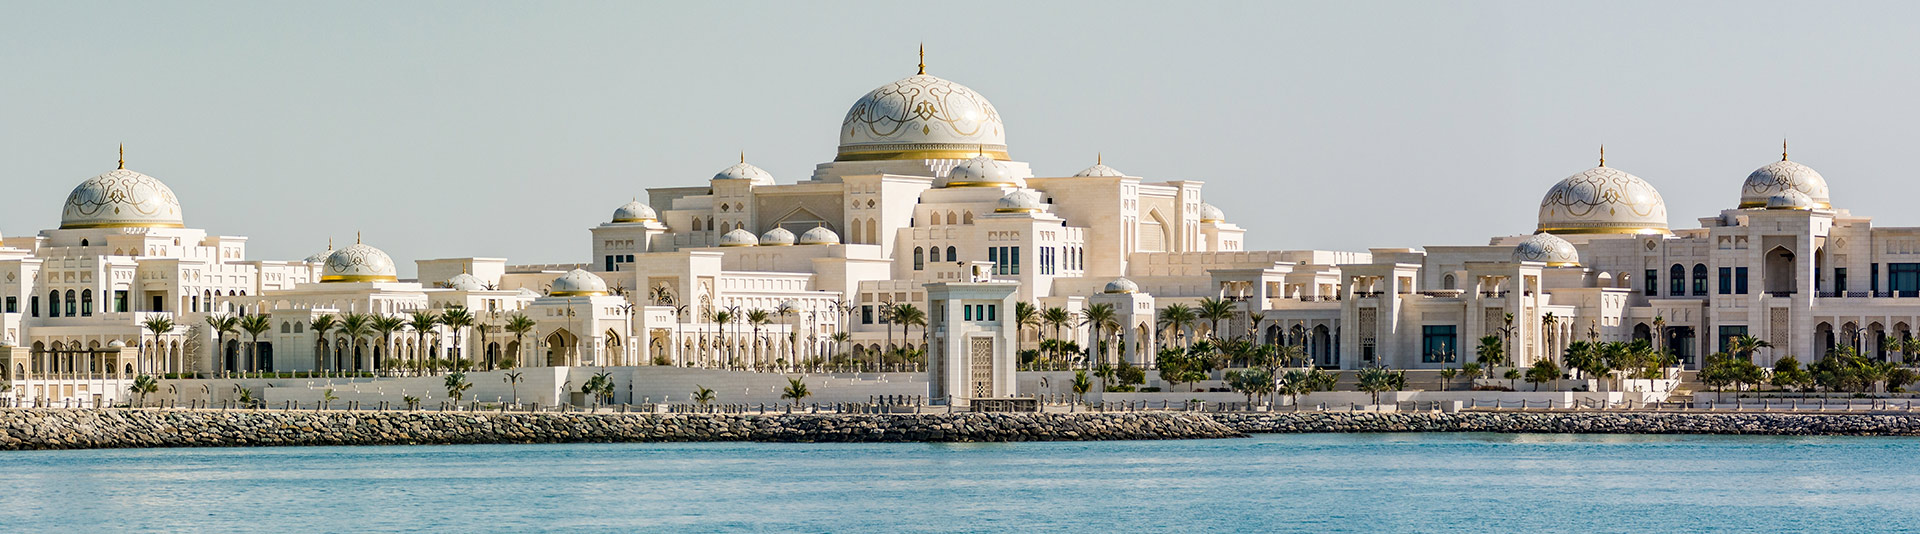 Rent A Yacht to Explore Abu Dhabi